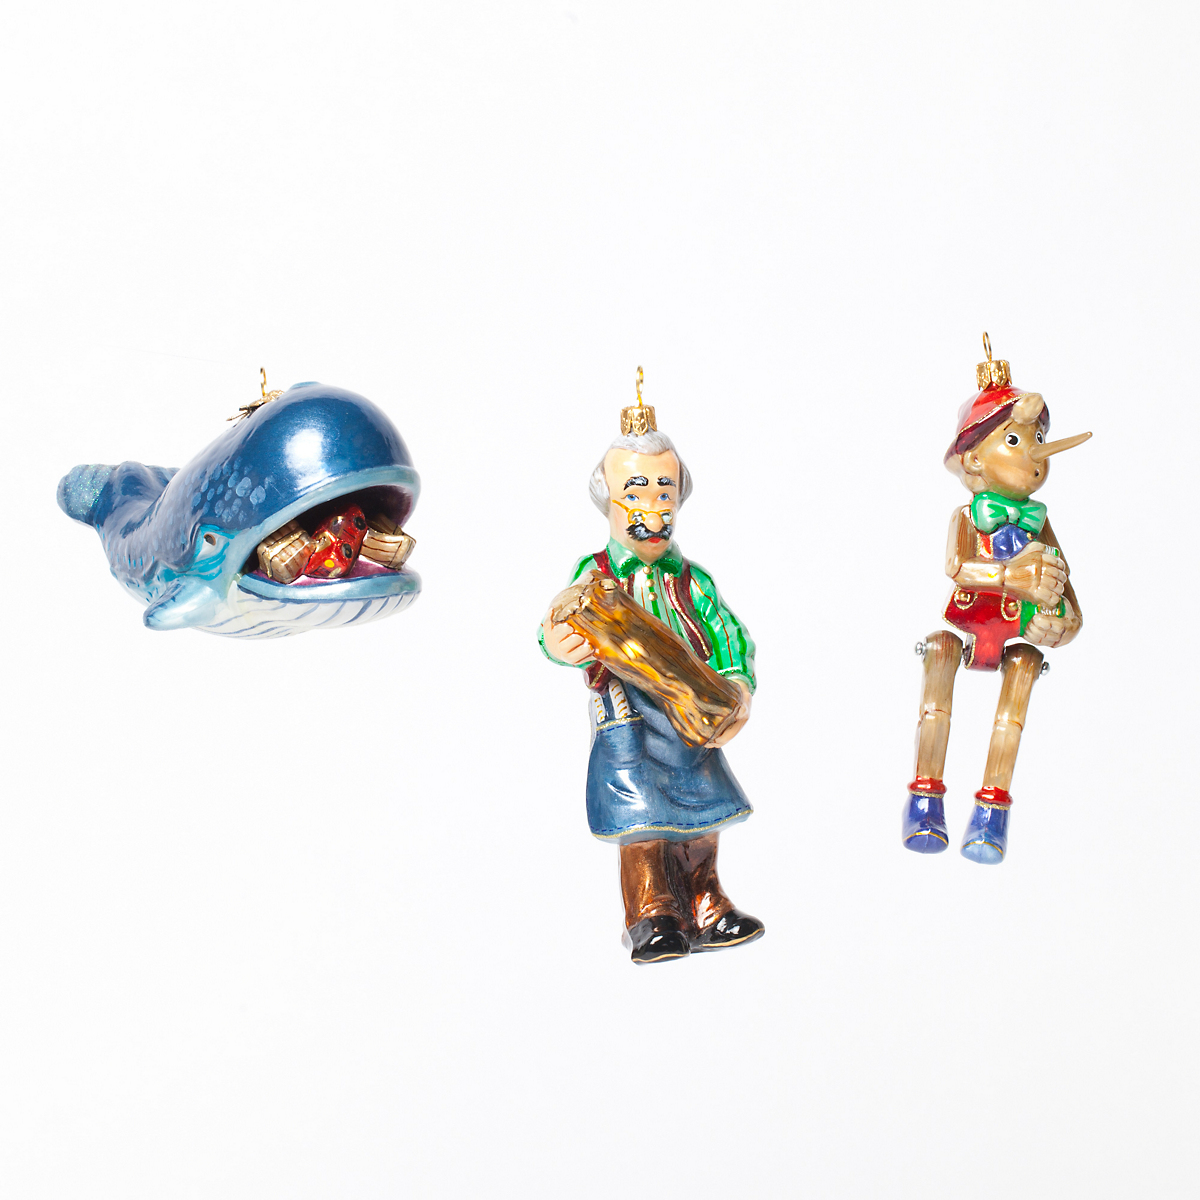 Pinocchio Christmas Ornament Collection